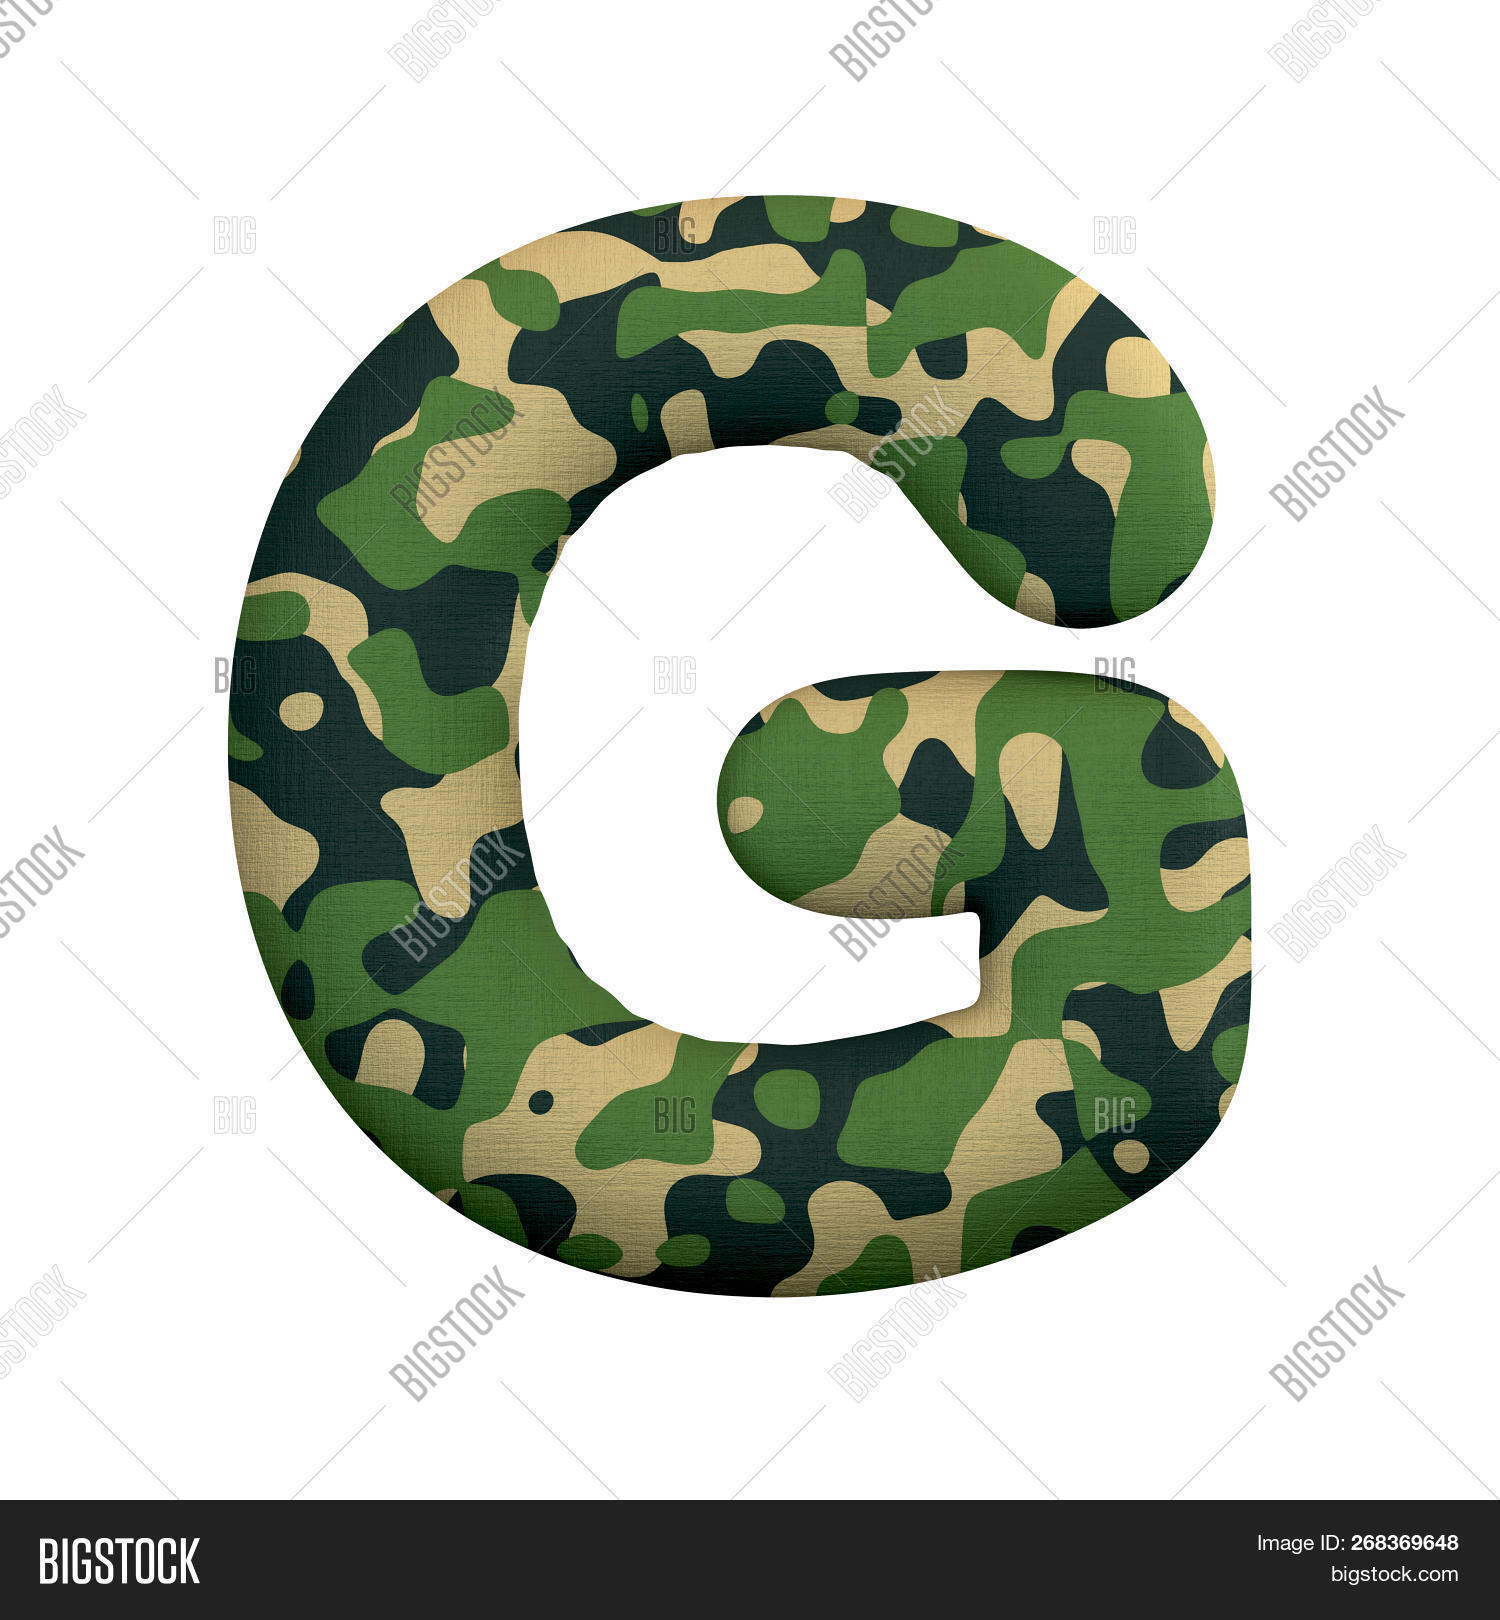 Army Letter G - Large Image & Photo (Free Trial) | Bigstock